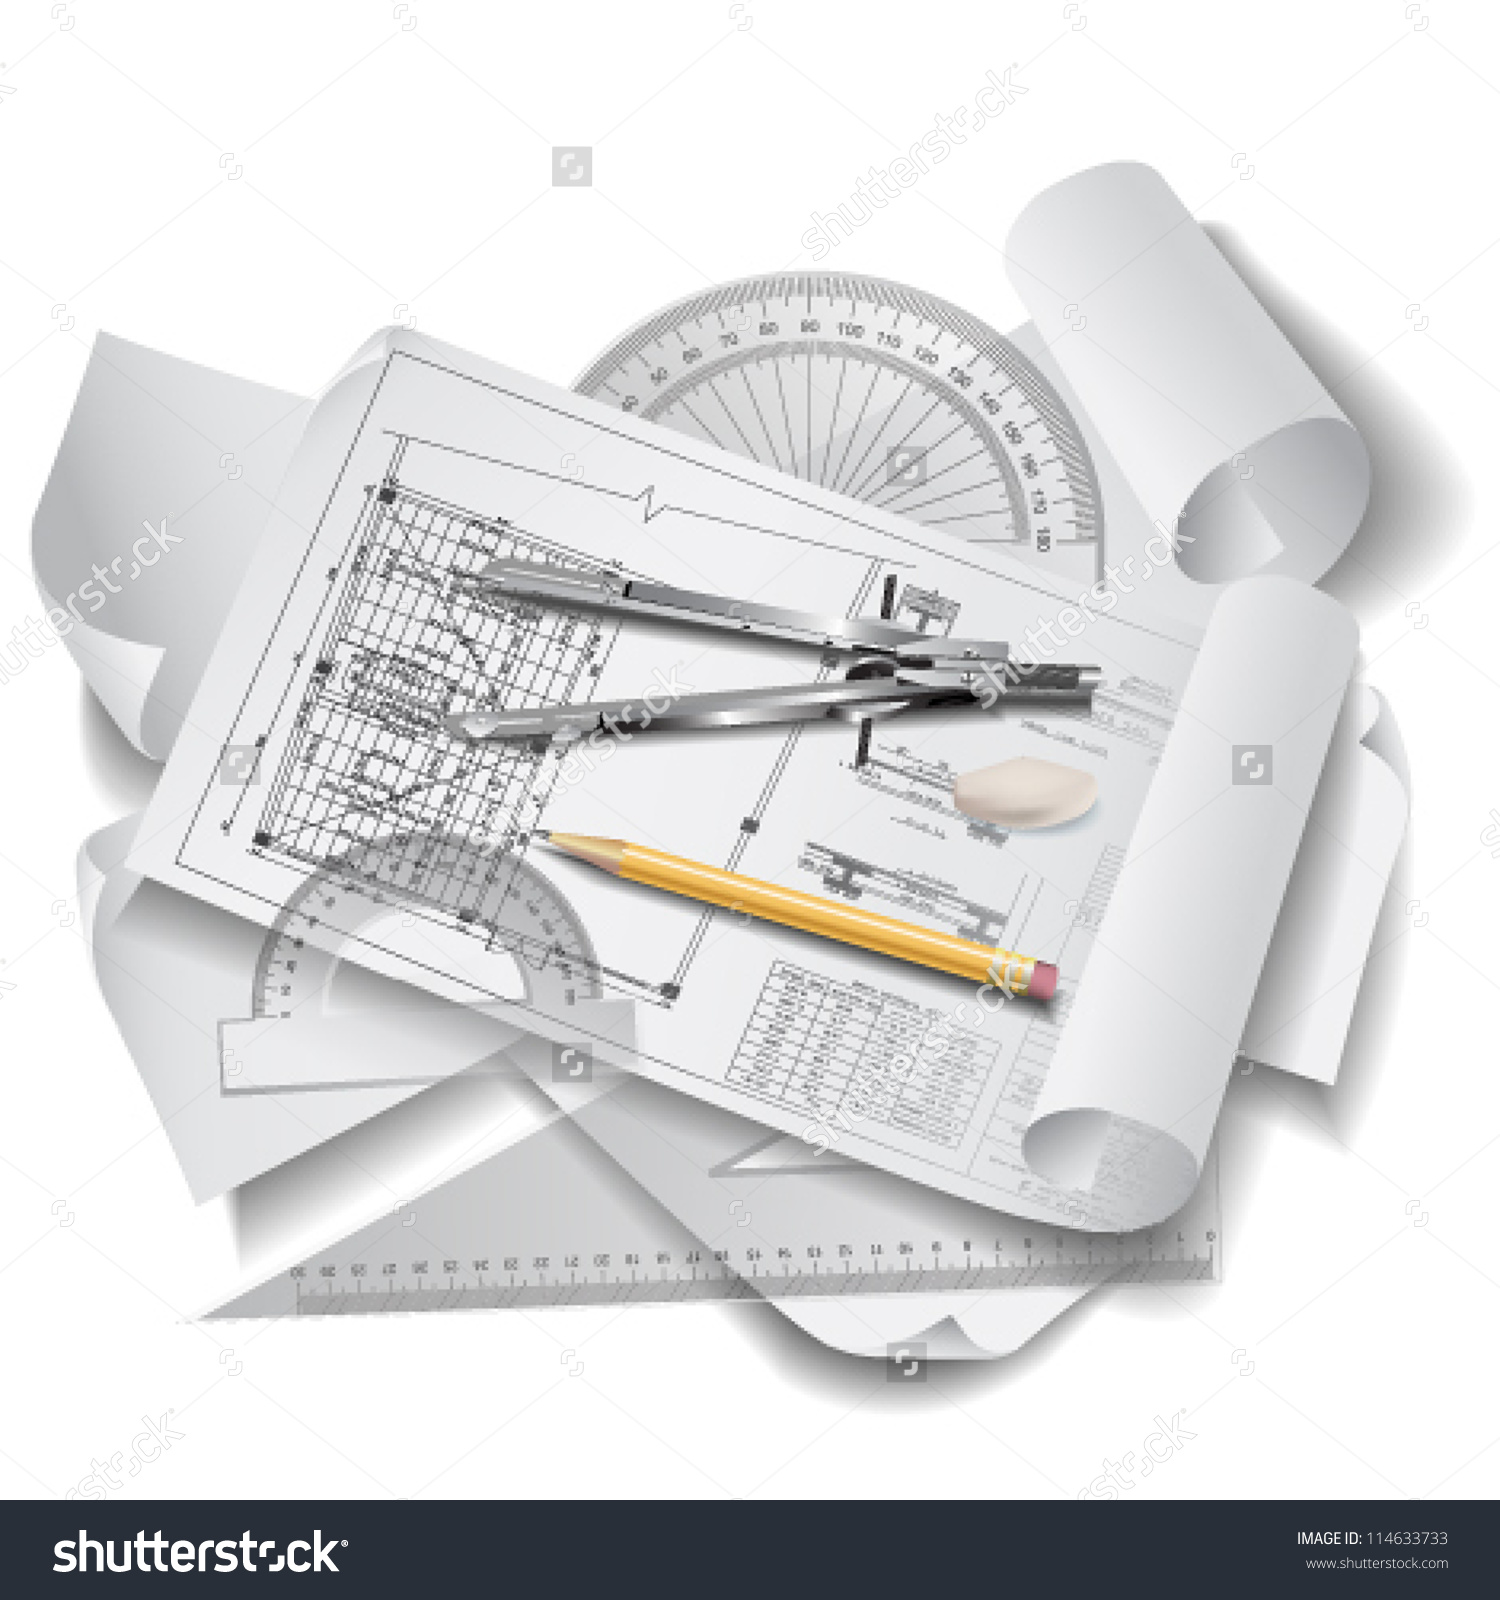 Online Architecture Drawing Tool Architechture Clipart